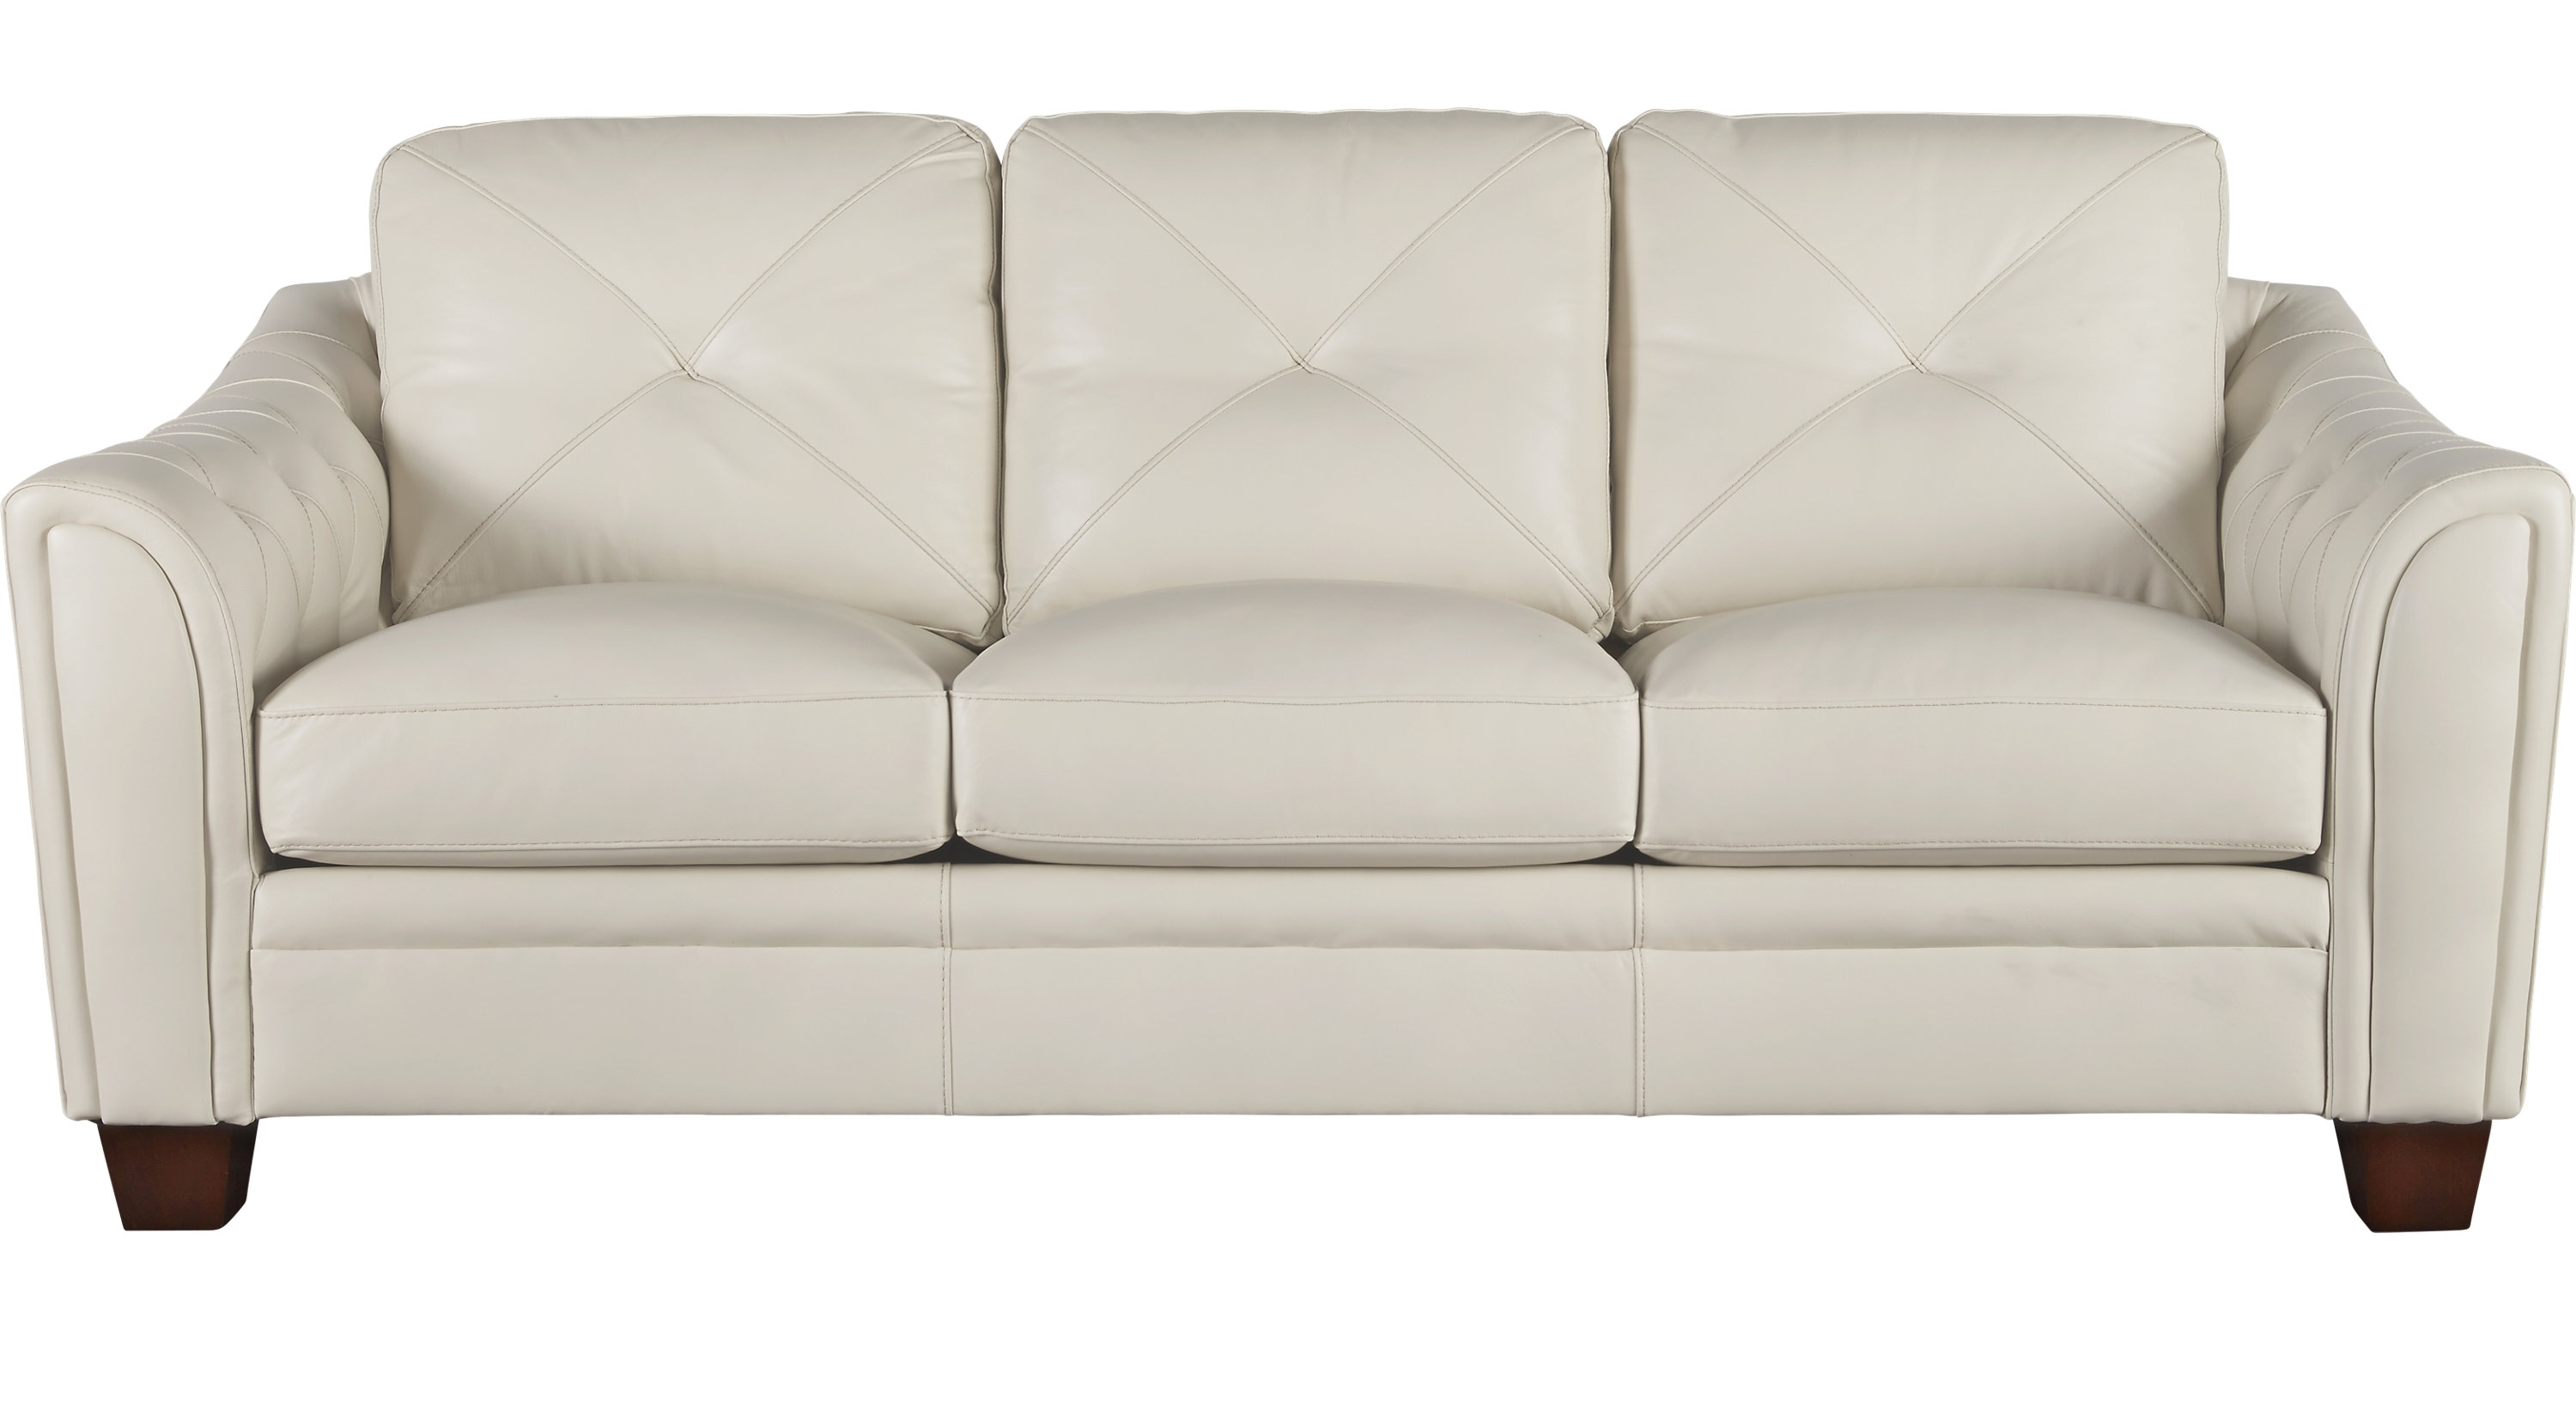 Latest Cindy Crawford Sofas With Regard To $ (View 12 of 15)